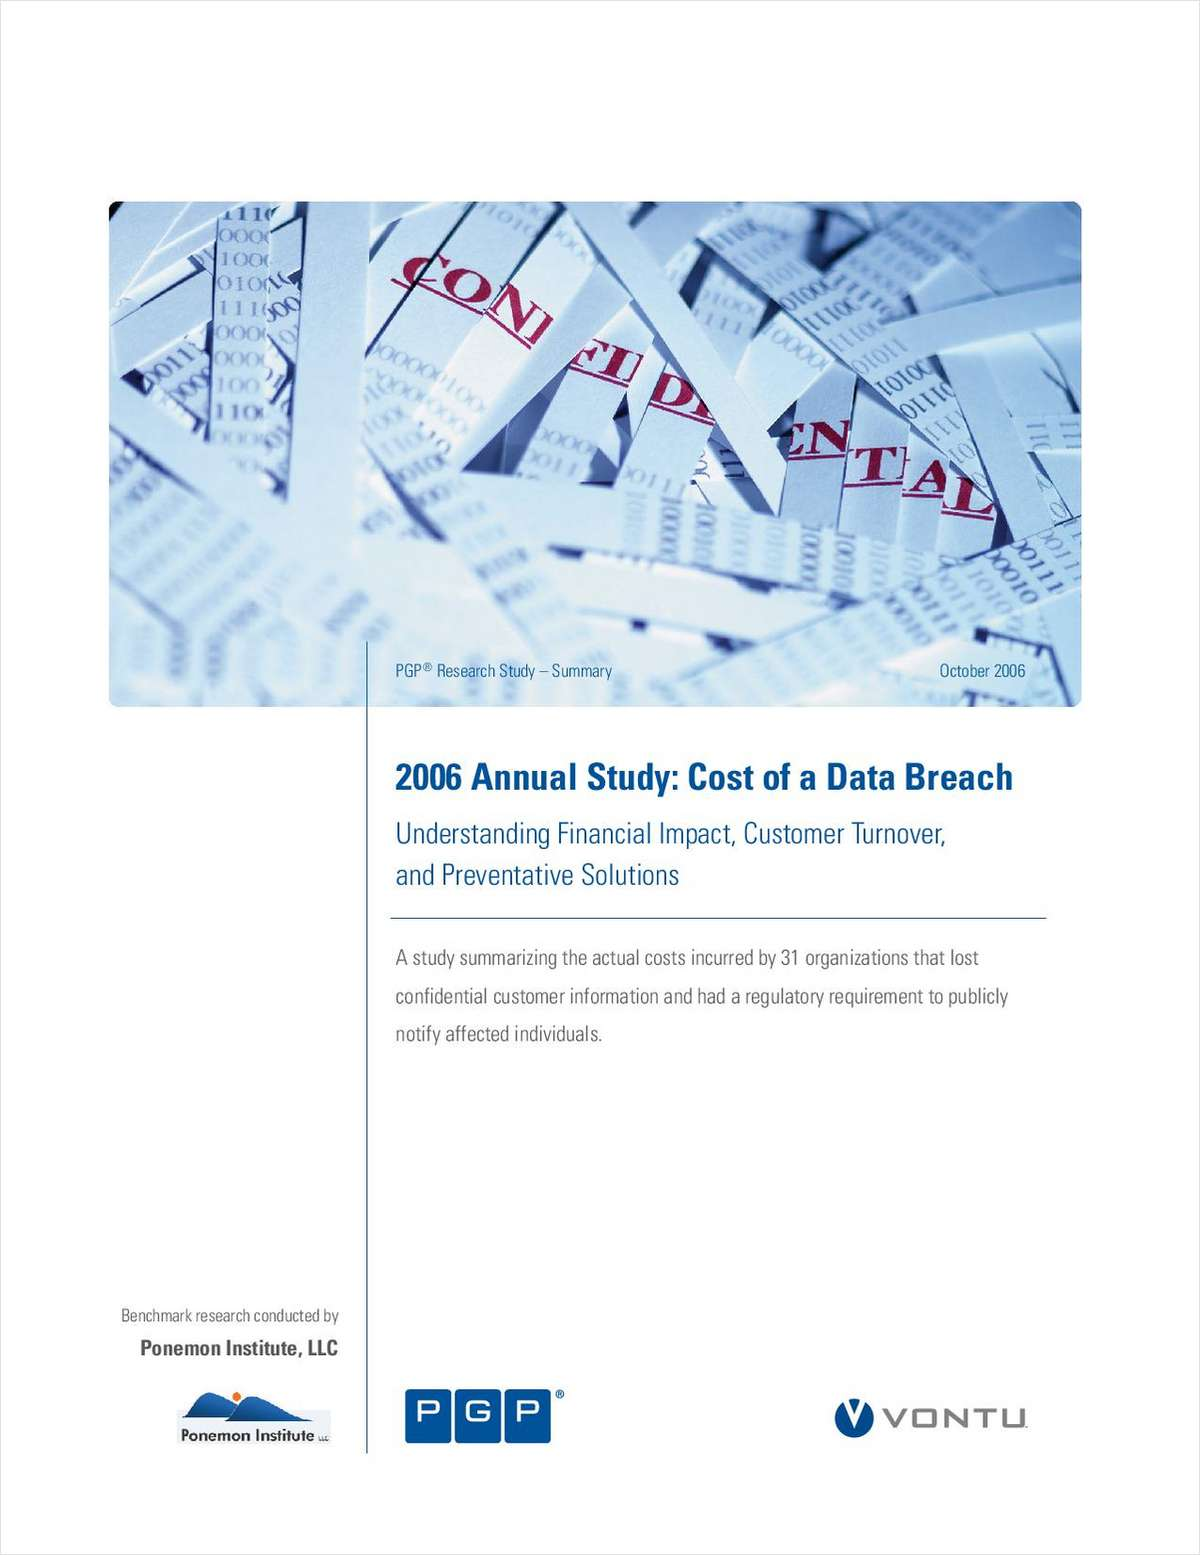 Lost Customer Information: What Does a Data Breach Cost Companies?